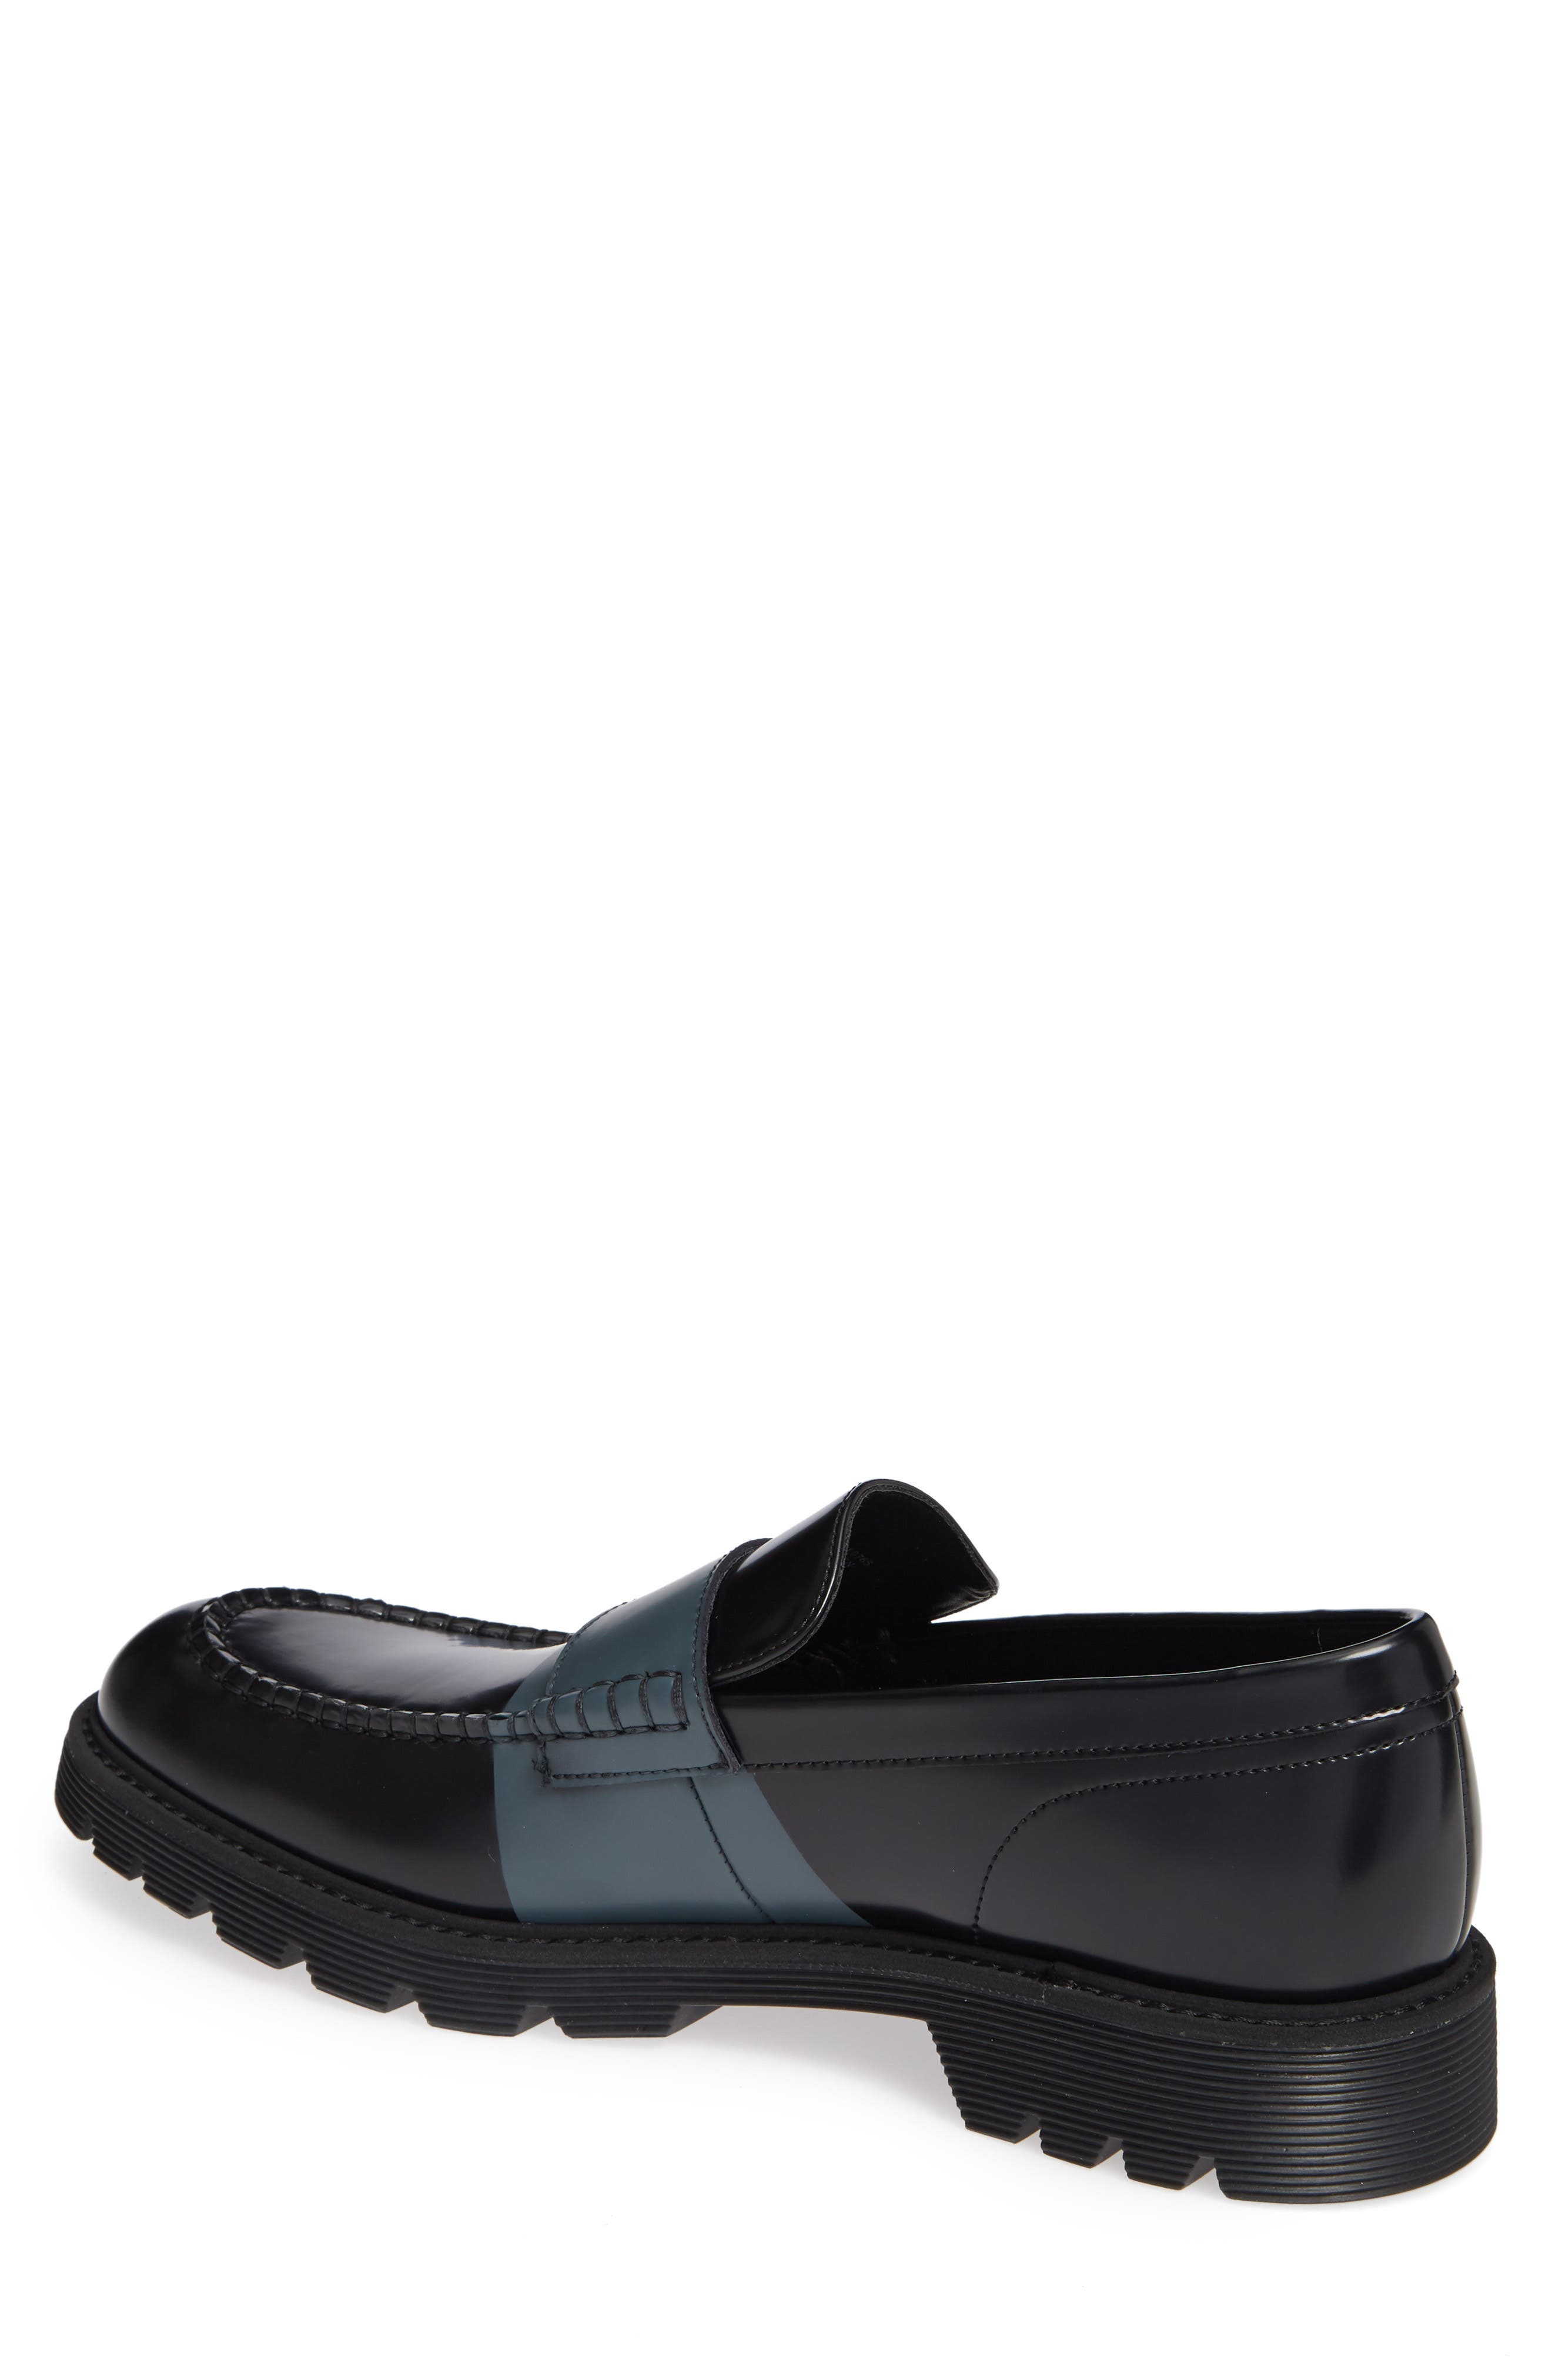 Florentino Penny Loafer,                             Alternate thumbnail 2, color,                             BLACK LEATHER